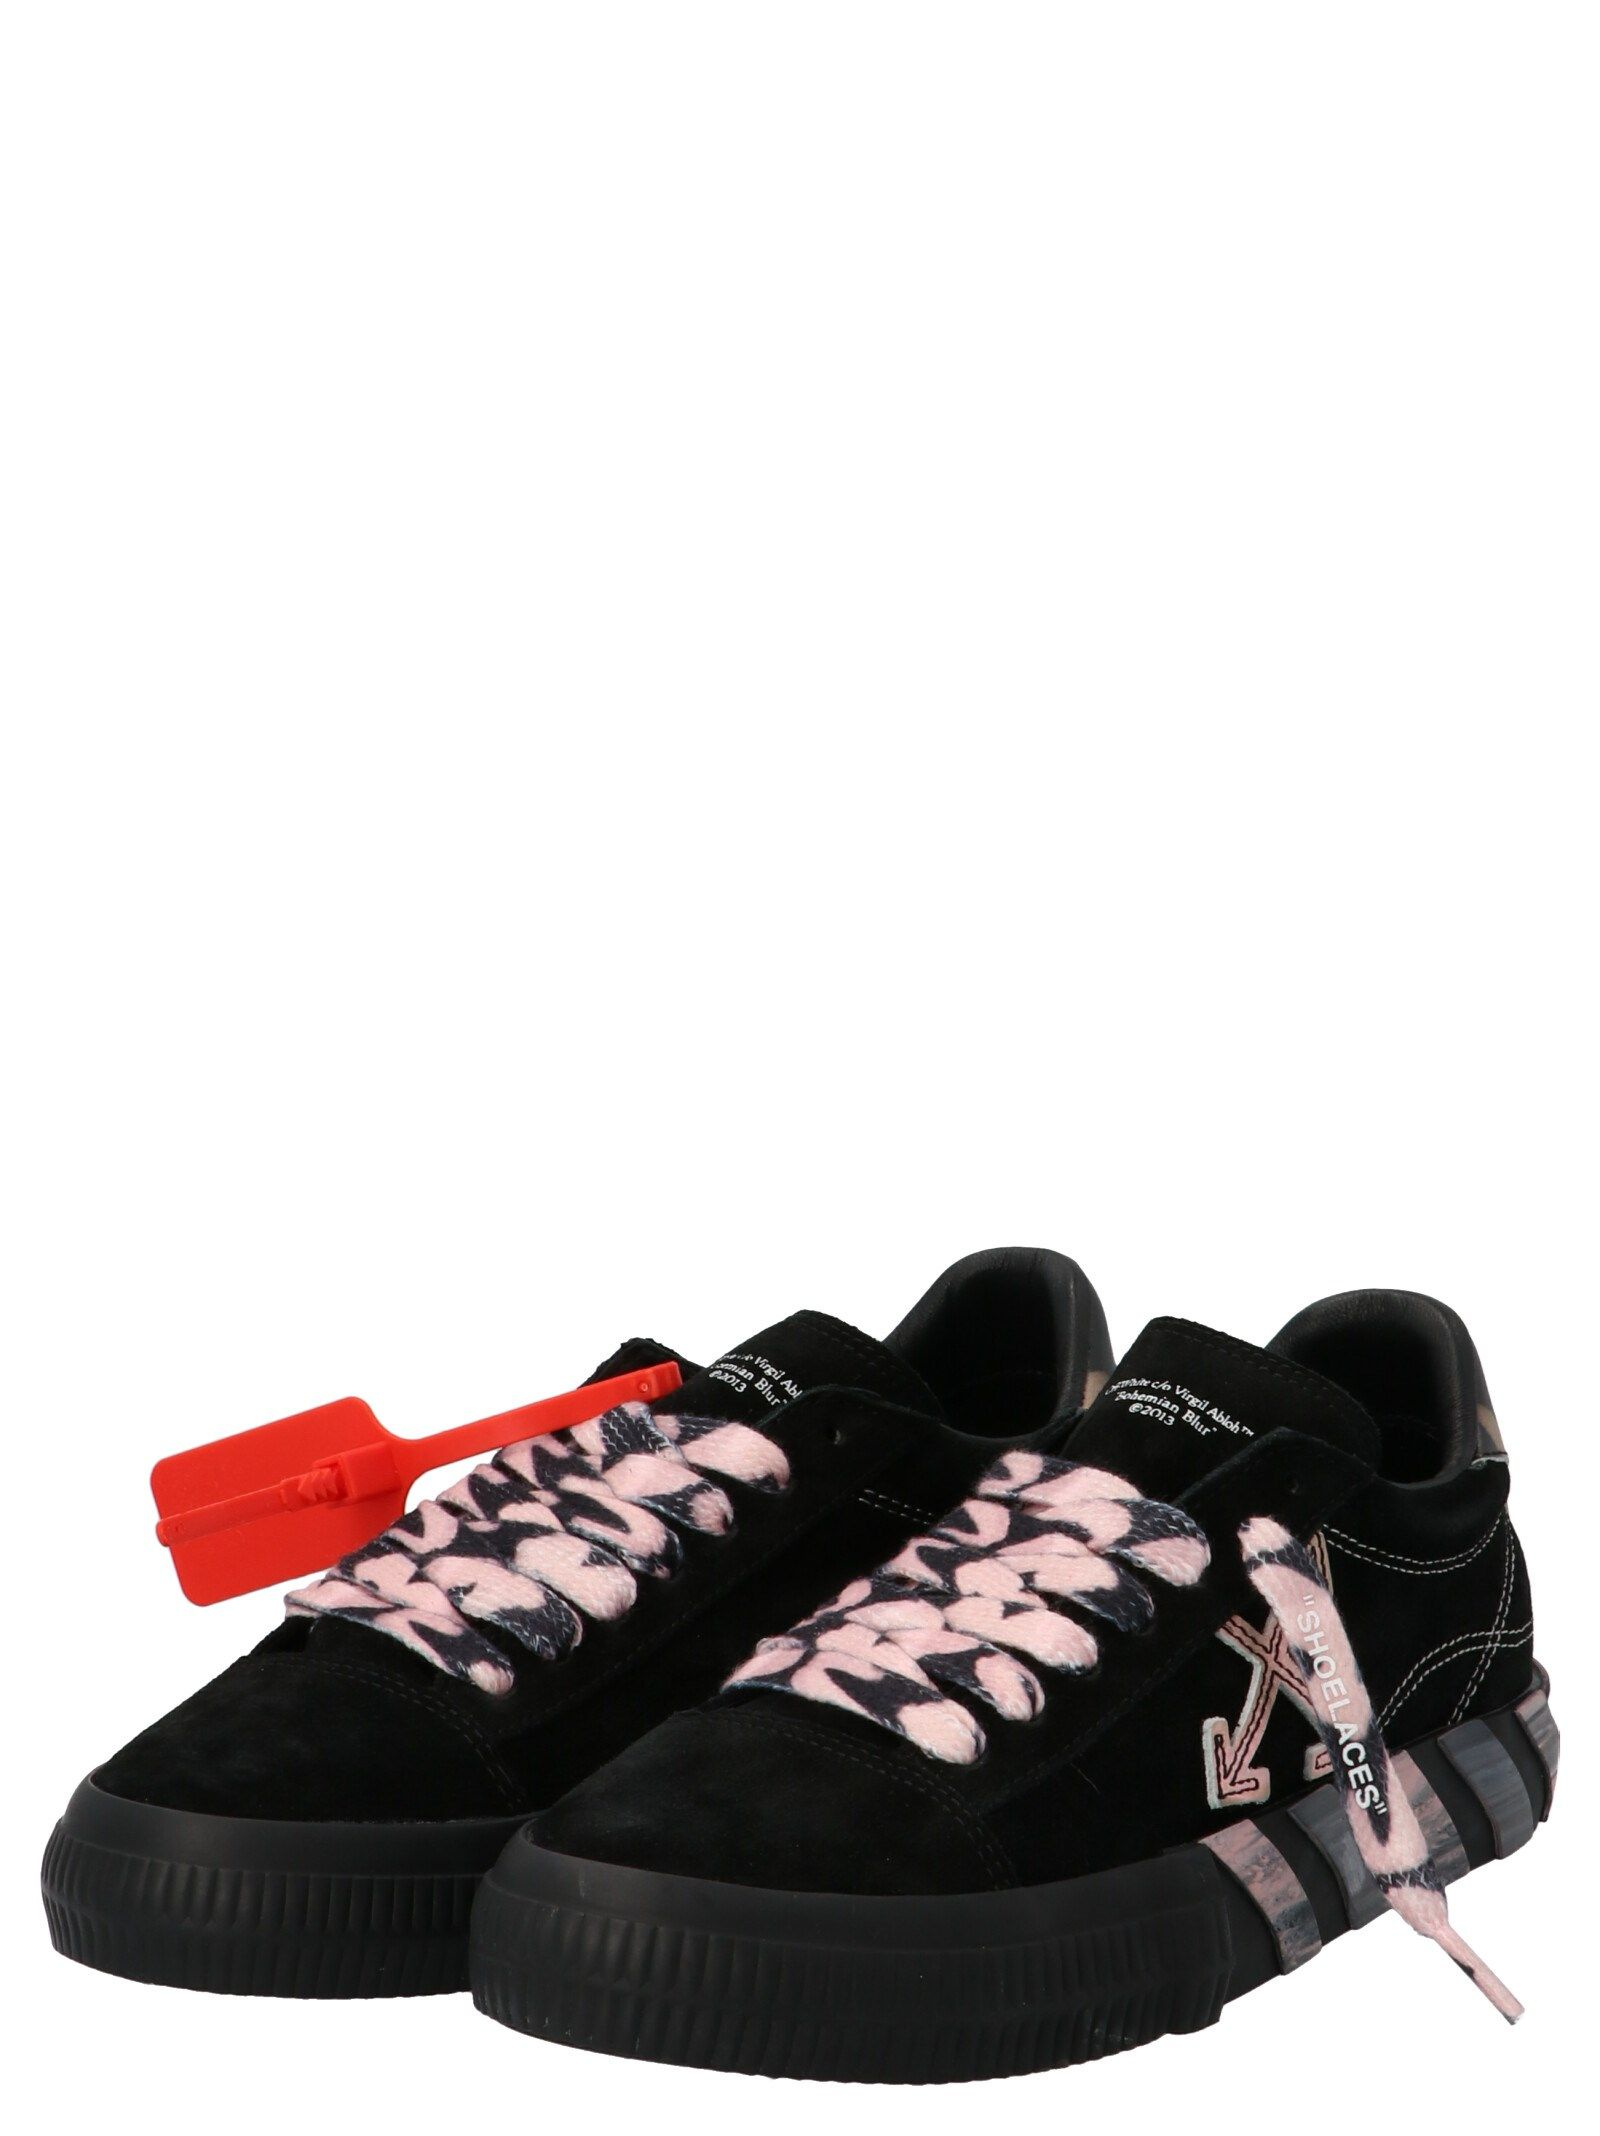 OFF-WHITE Leathers OFF-WHITE WOMEN'S BLACK OTHER MATERIALS SNEAKERS